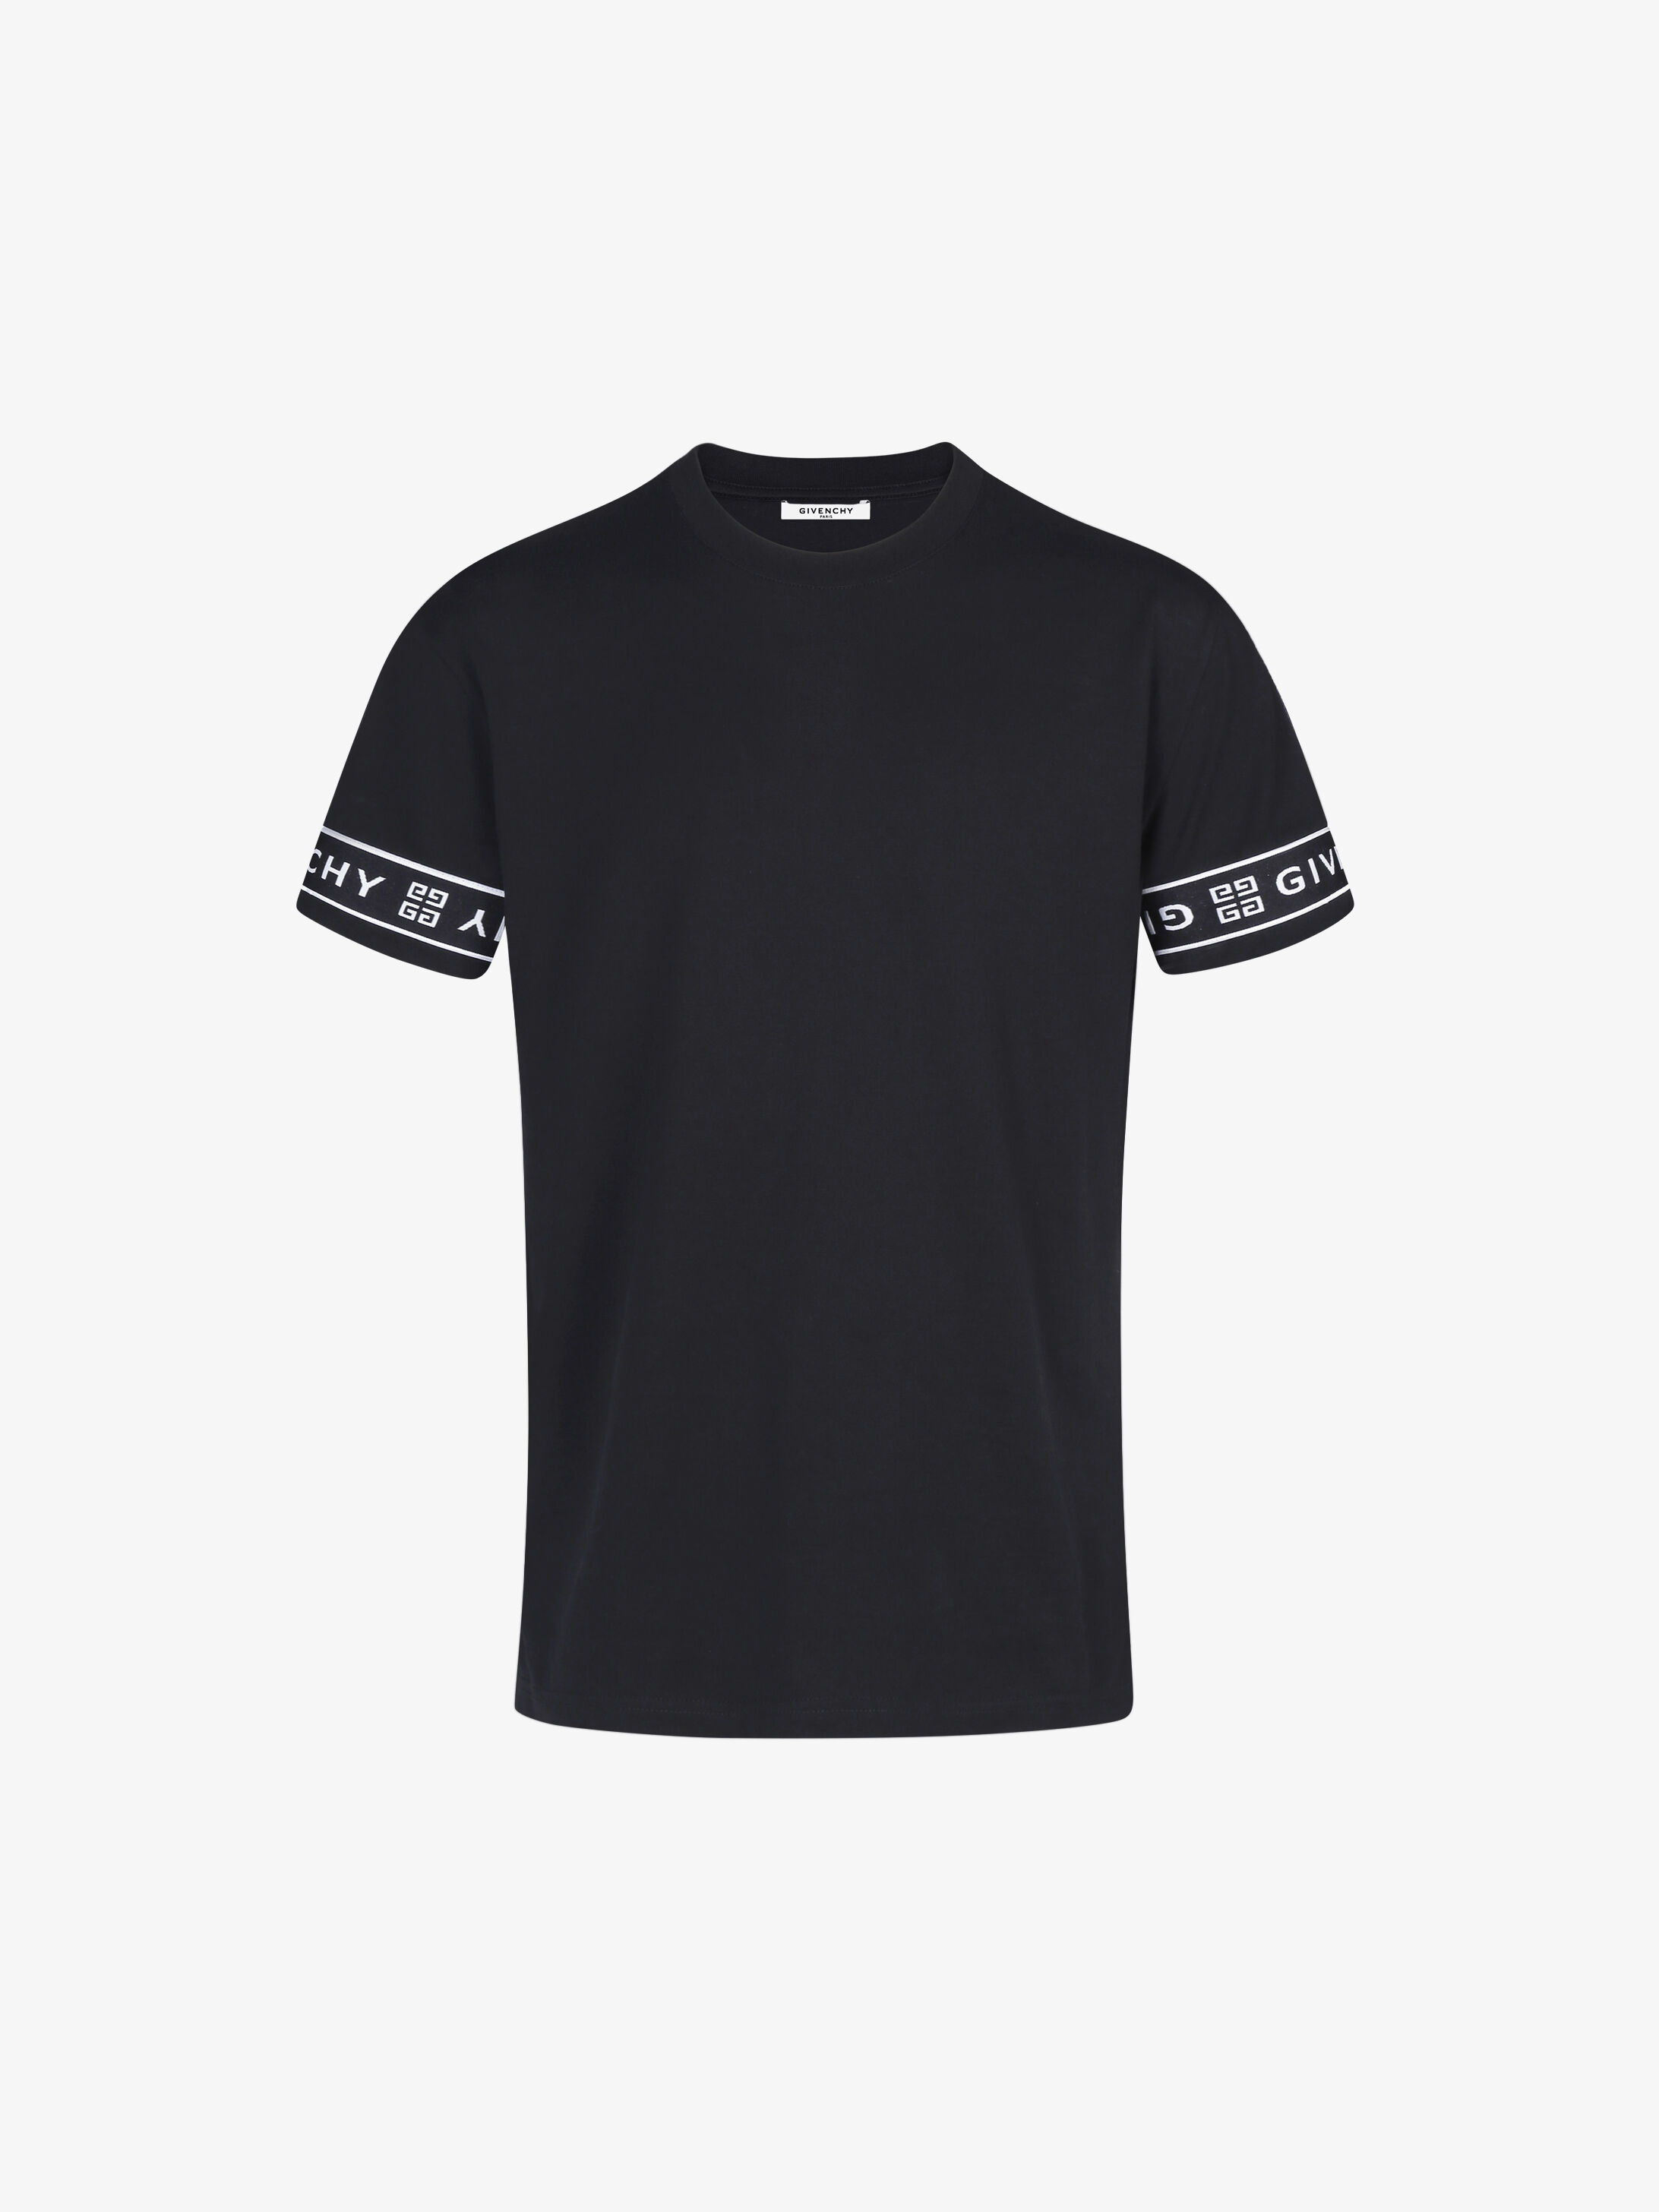 aff52f46 Men's T-Shirts collection by Givenchy. | GIVENCHY Paris